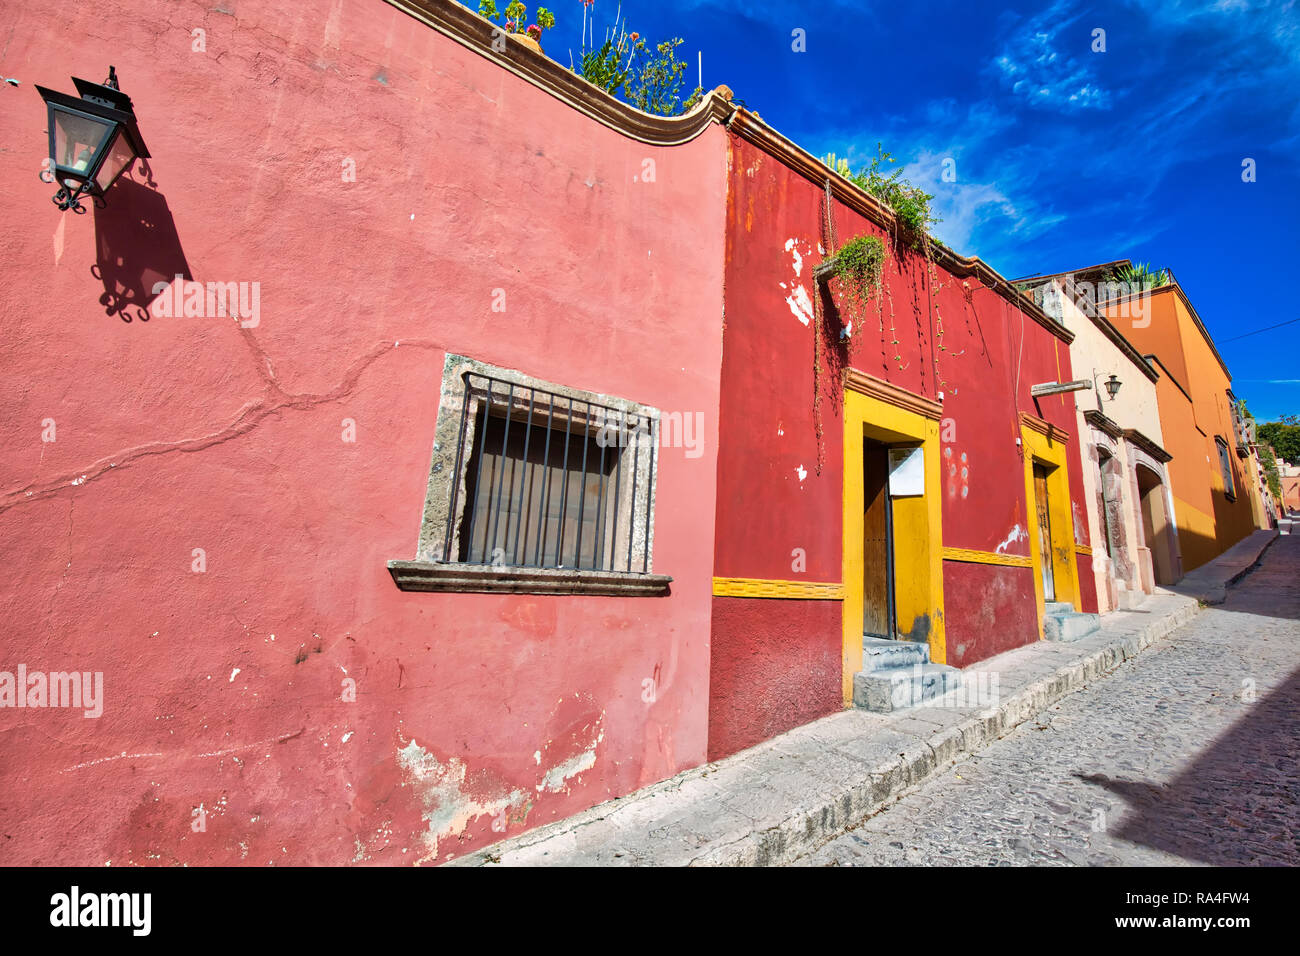 Mexico, Colorful buildings and streets of San Miguel de Allende in historic city center - Stock Image